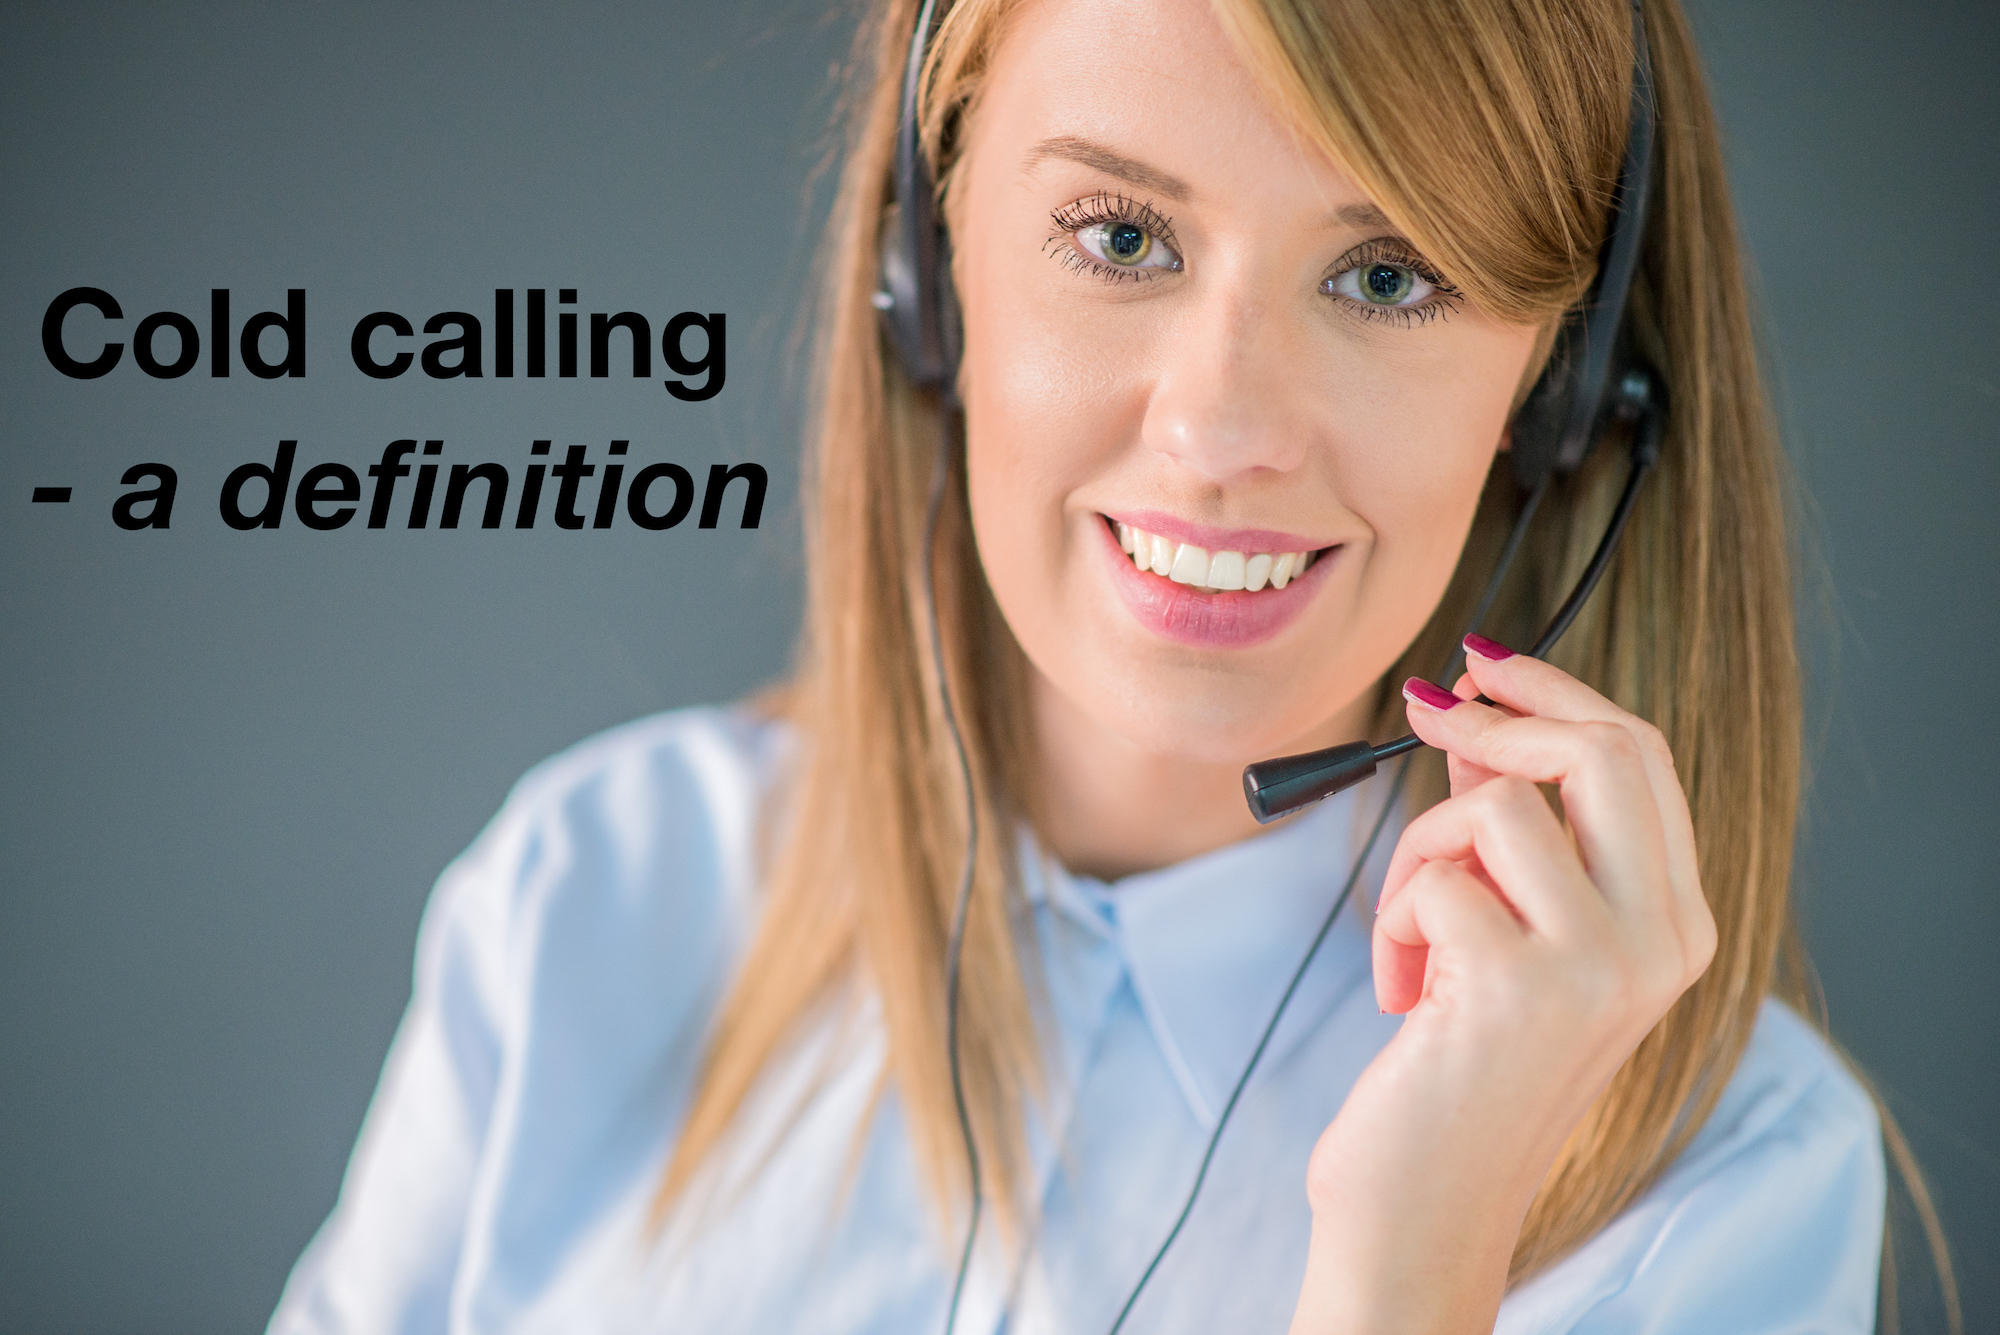 Cold calling - a definition